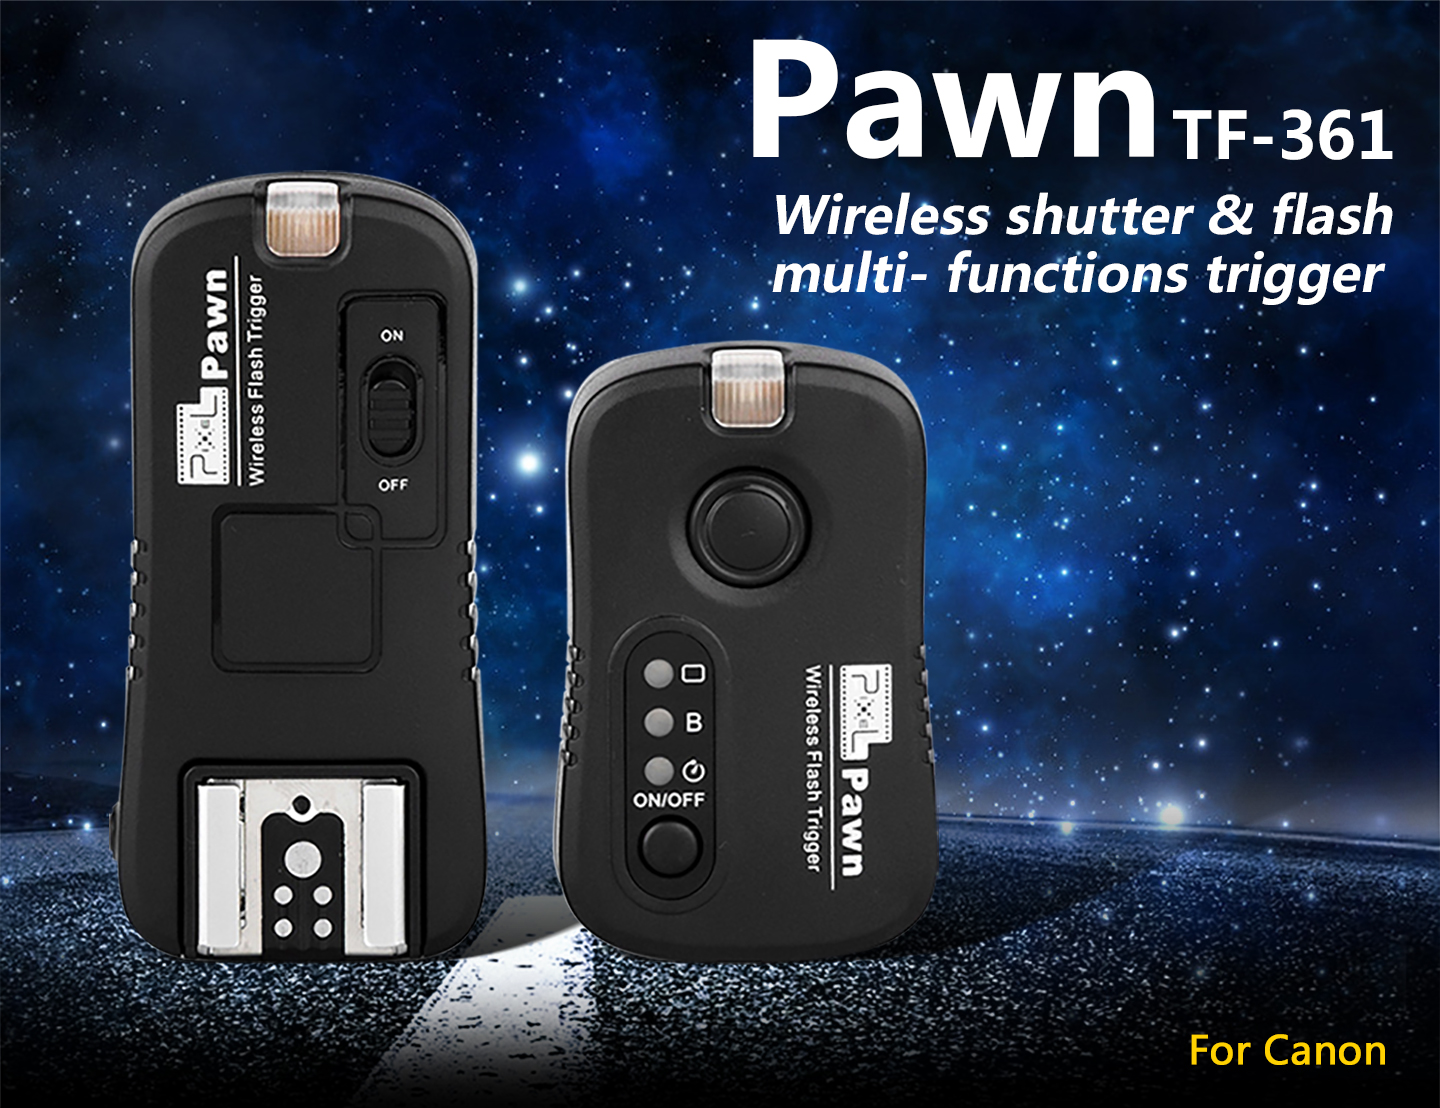 Pawn TF-361 Wireless shutter & flash multi-functions trigger